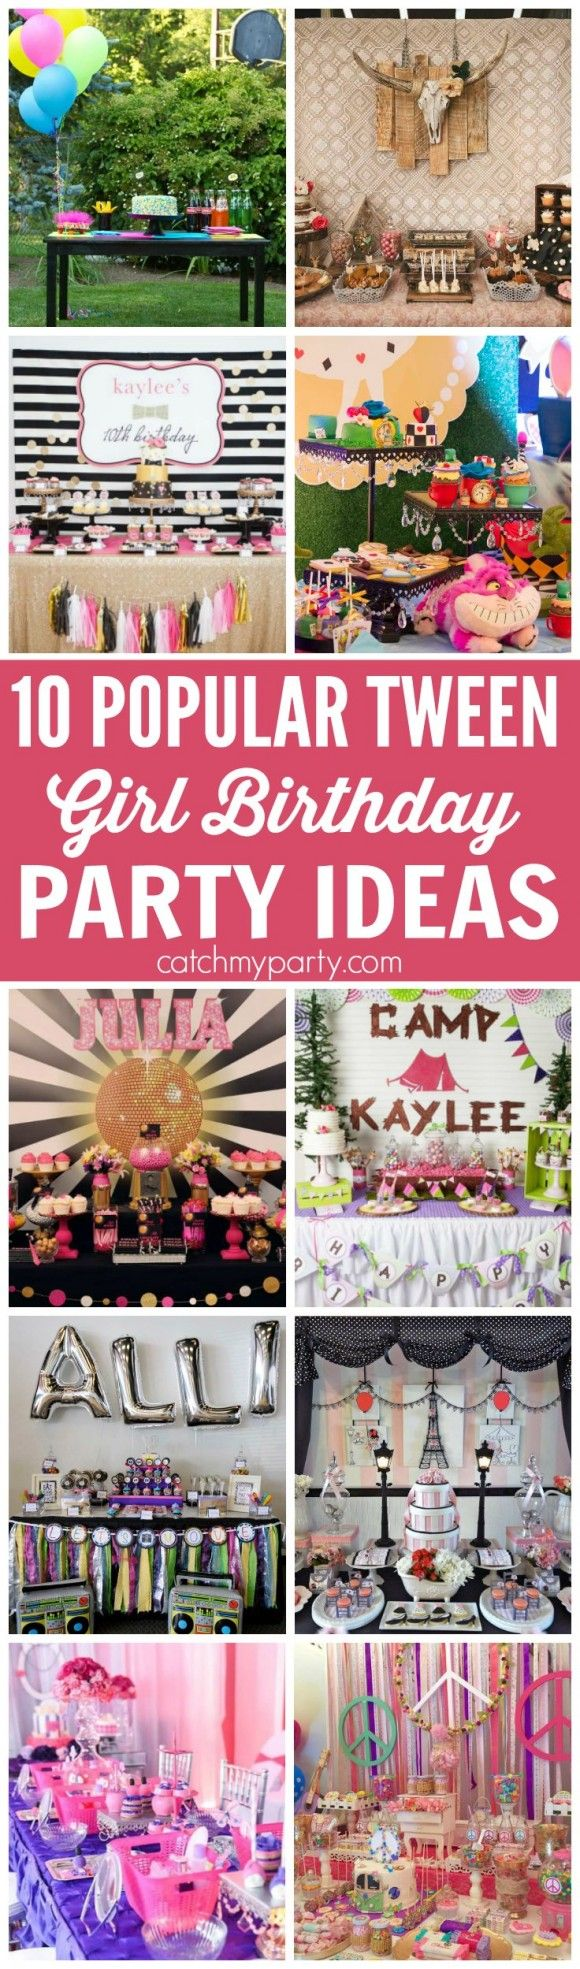 10 Popular Tween Girl Birthday Party Ideas